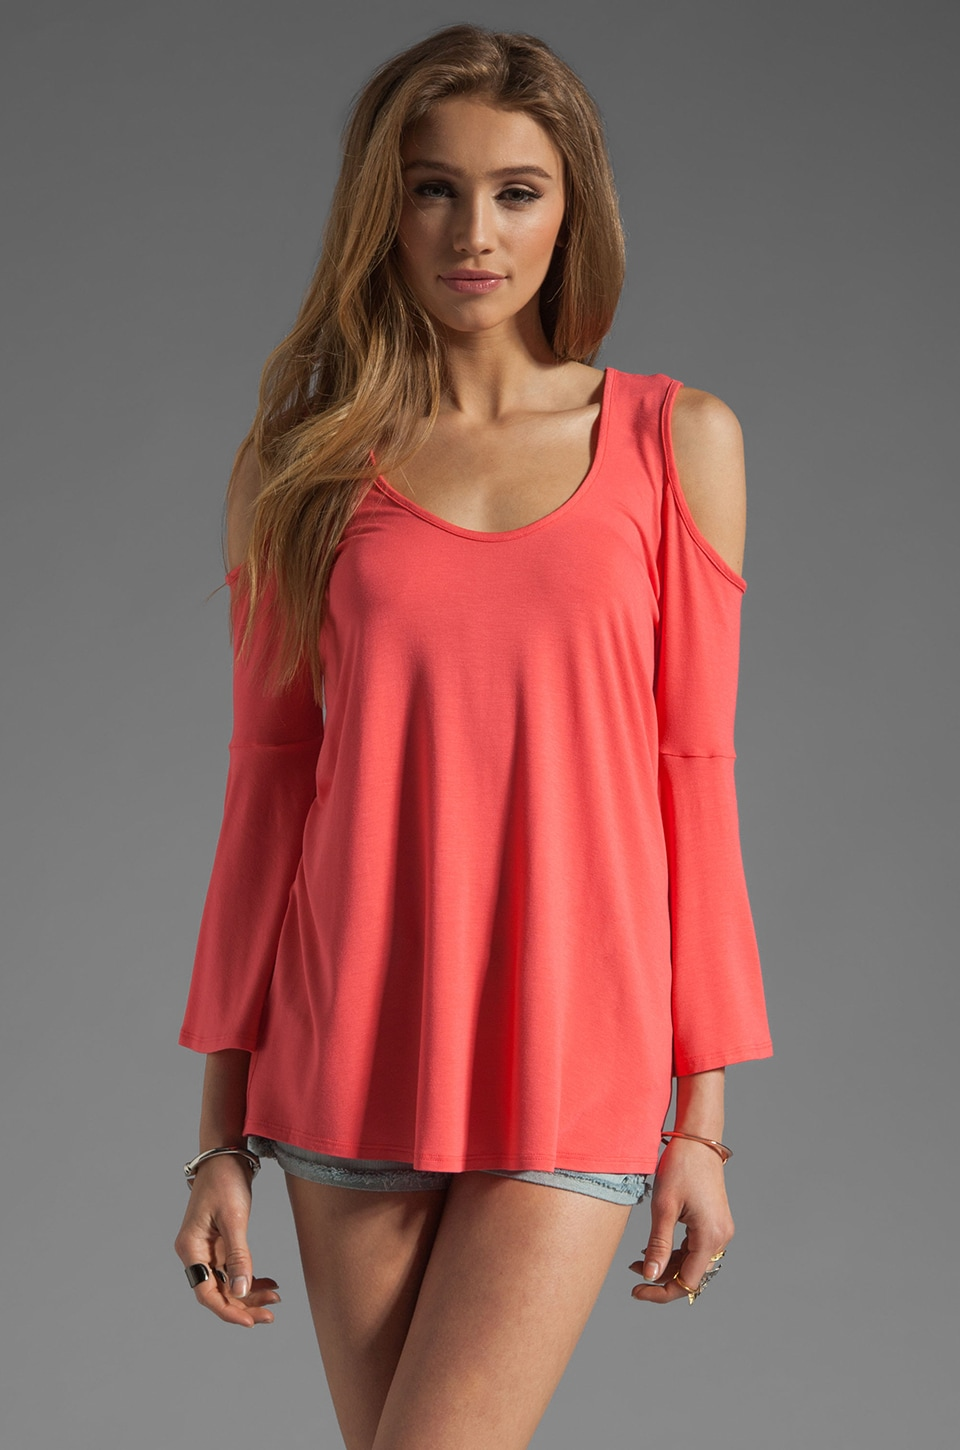 James & Joy Brenda Bell Sleeve Top in Coral